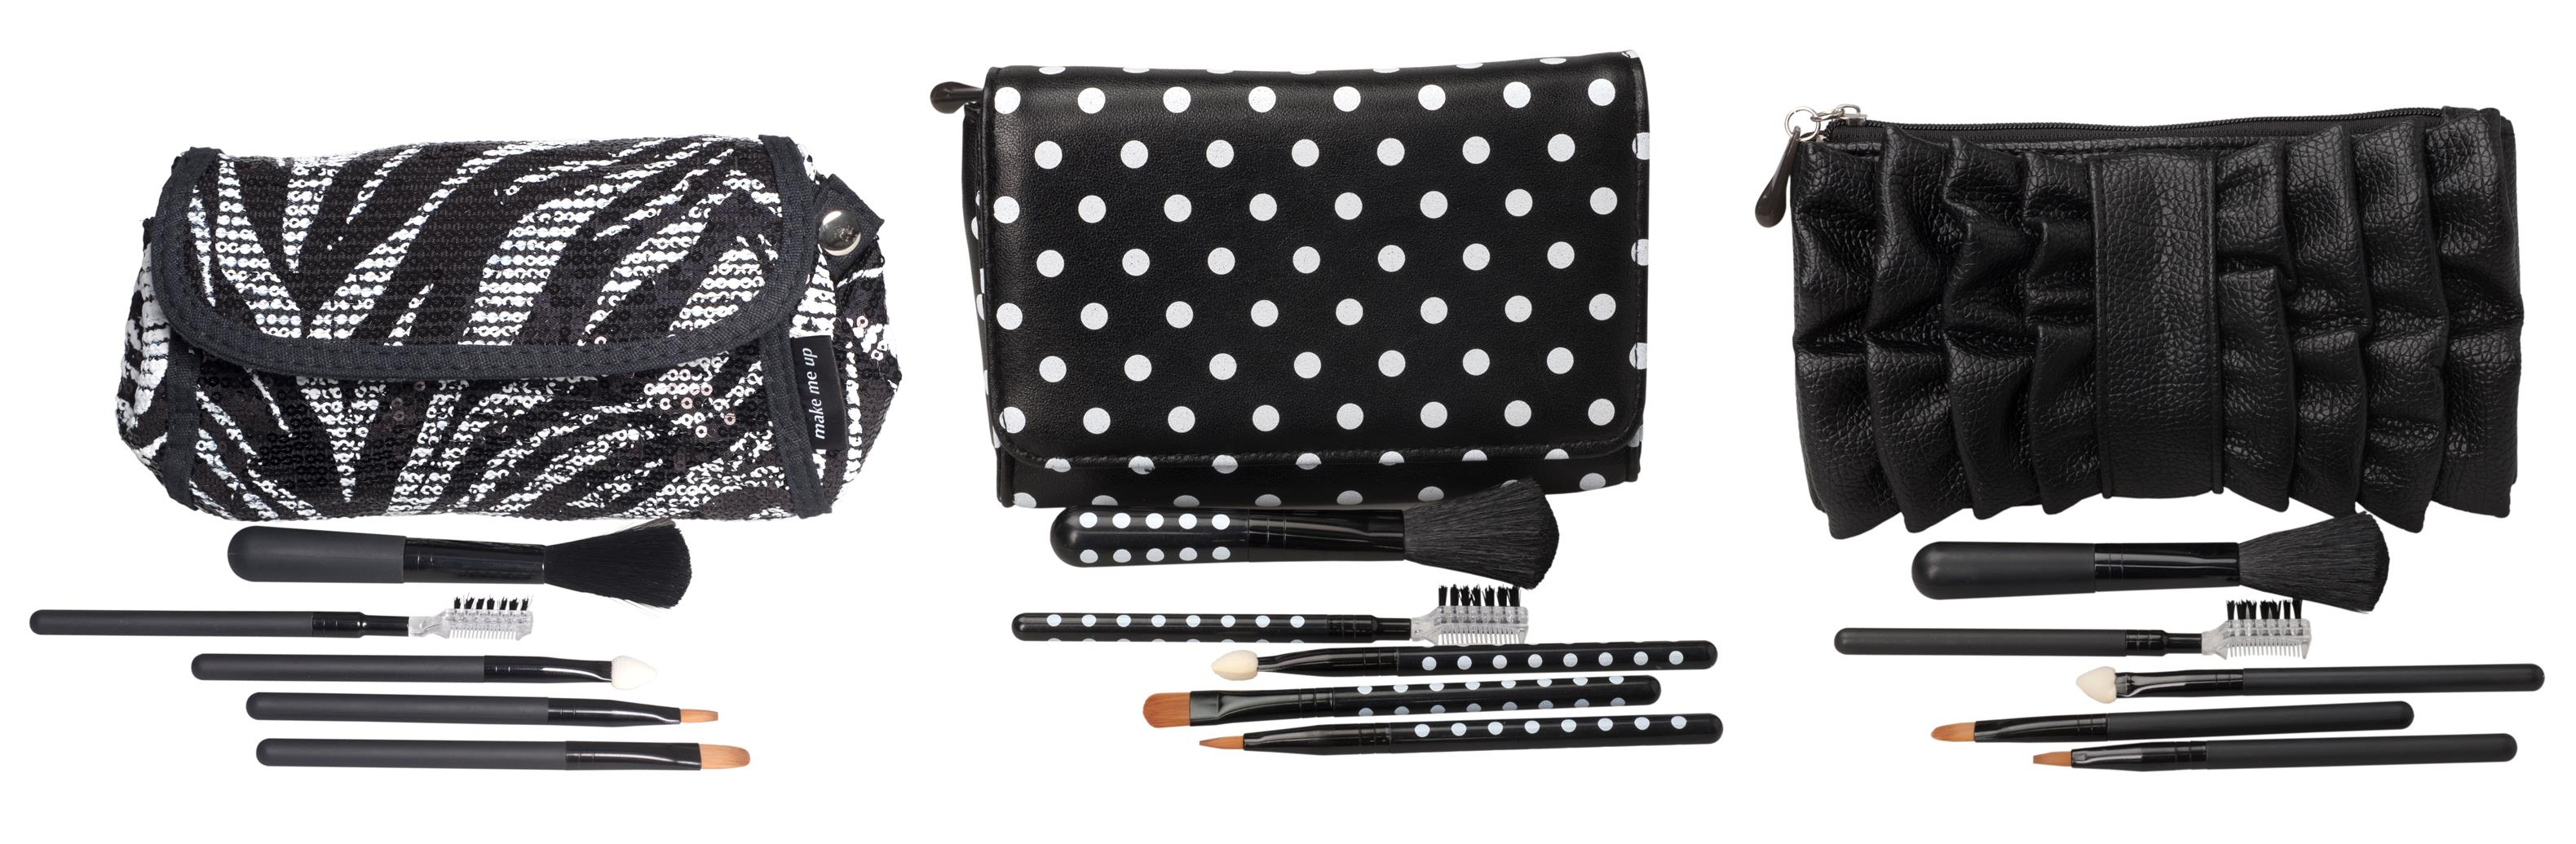 Make Me Up Polka Dot Makeup Purse and Brush Sets from i-Glamour